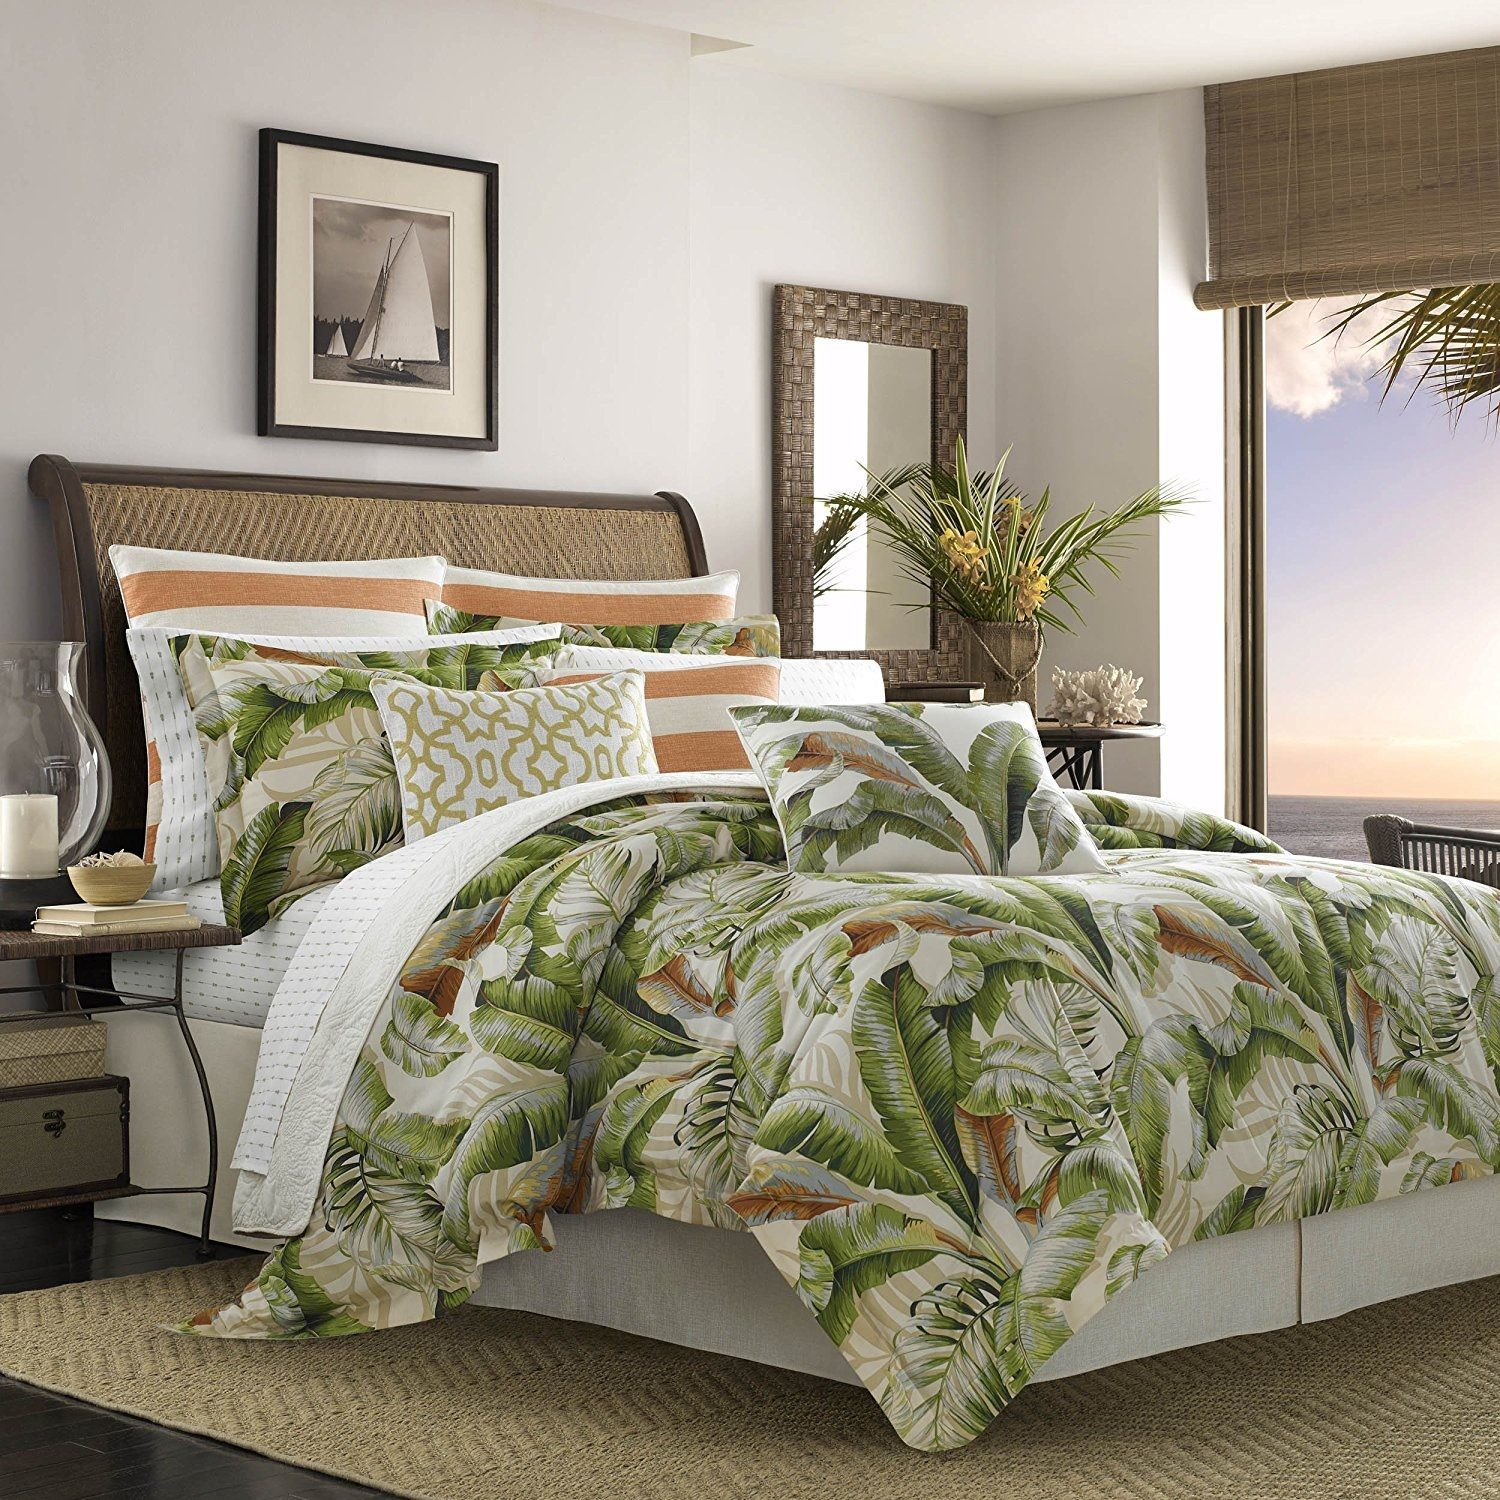 100 Tropical Bedding Sets And Tropical Comforters For 2020 Comforter Sets Tommy Bahama Bedding Tropical Bedding Sets